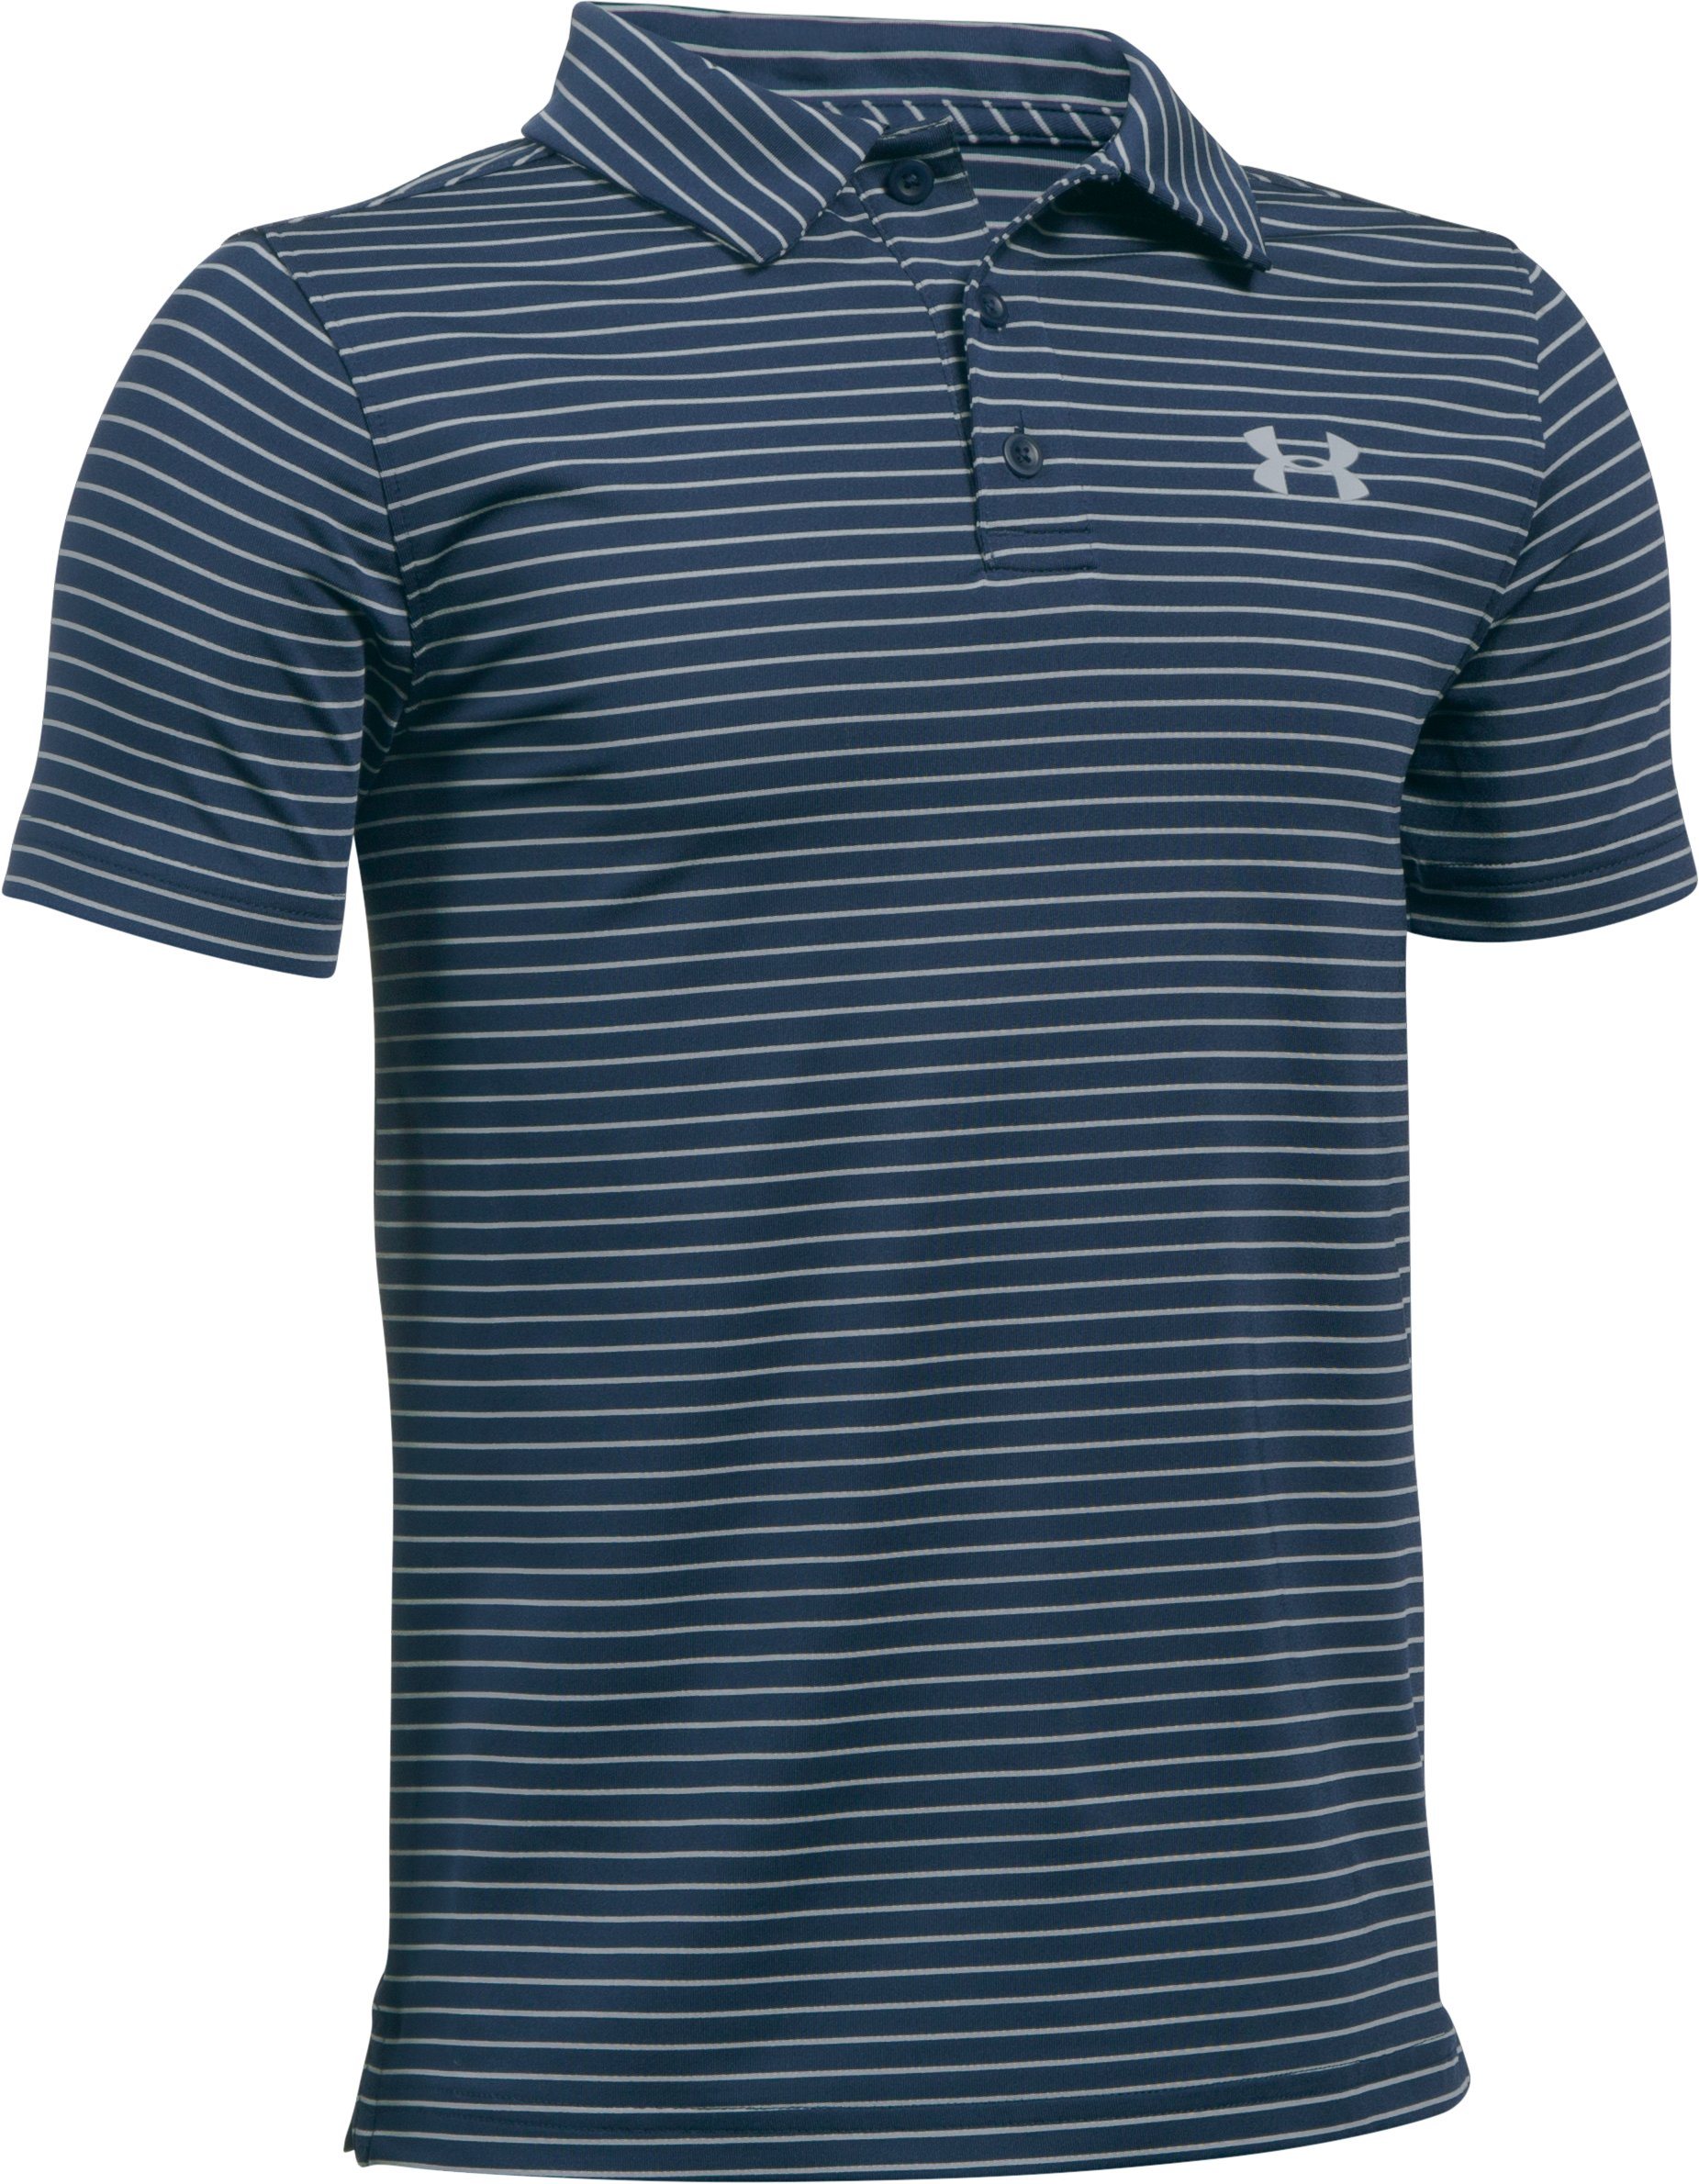 Boys' UA Playoff Stripe Polo, Academy, undefined